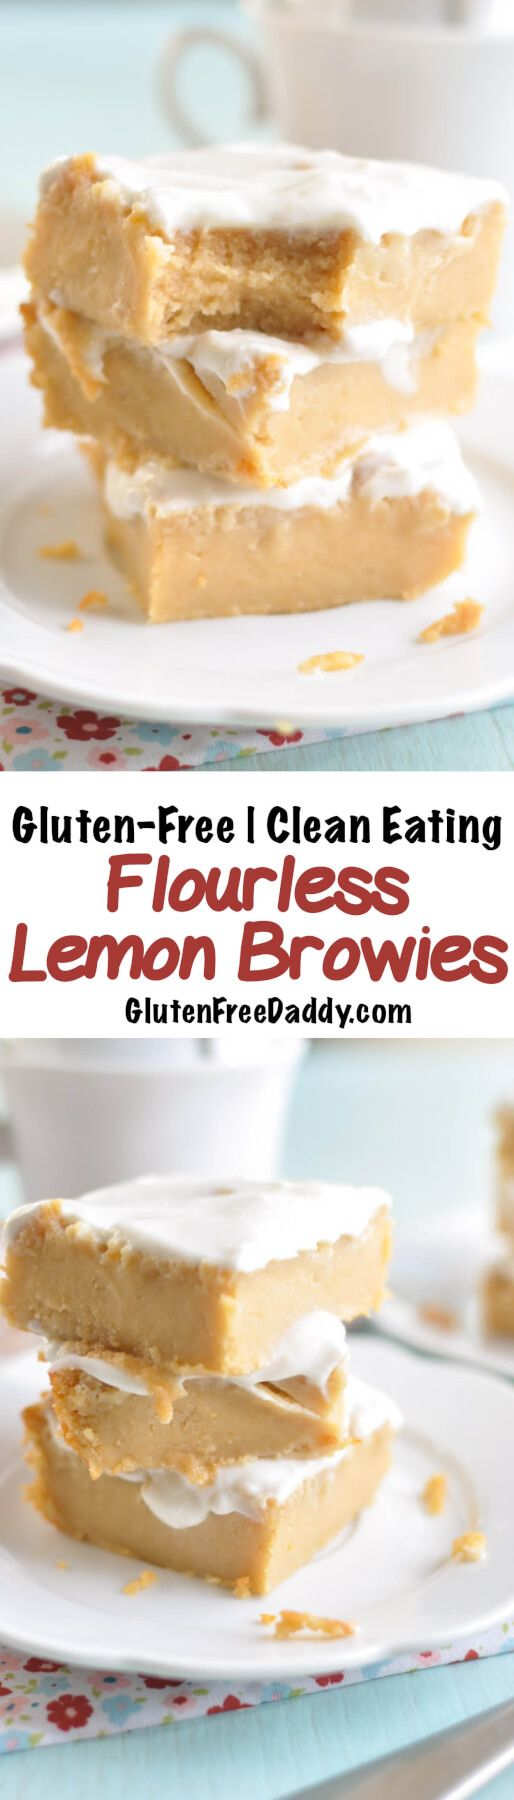 These flourless lemon brownies are rich, decadent, and delicious. They are also made without any flour or refined sugar and are gluten-free and Clean Eating. I love the Greek yogurt lemon frosting!